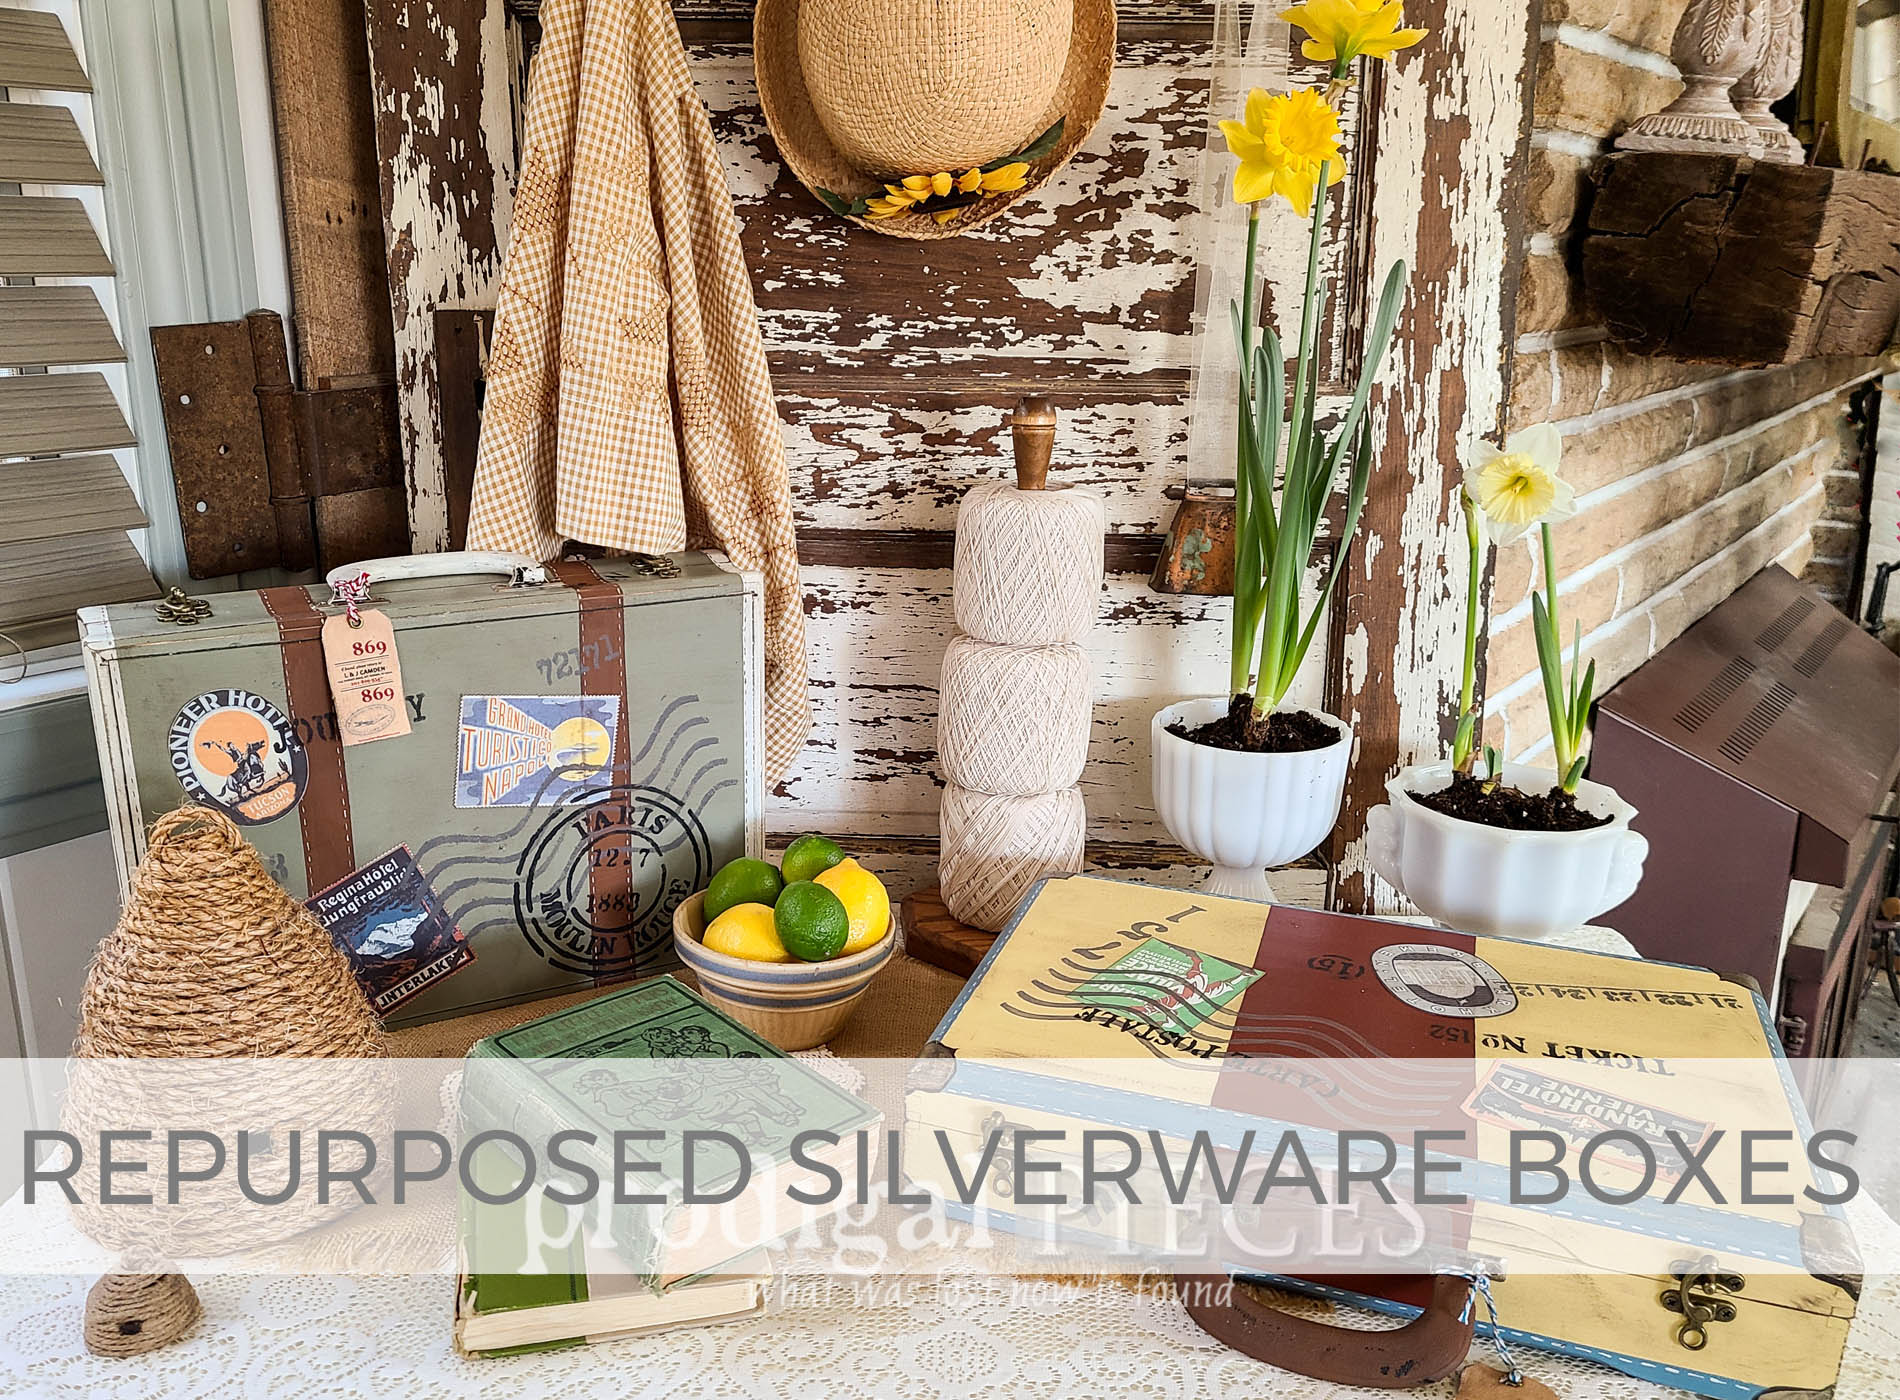 DIY Repurposed Silverware Boxes into Vintage Style Luggage by Larissa of Prodigal Pieces | prodigalpieces.com